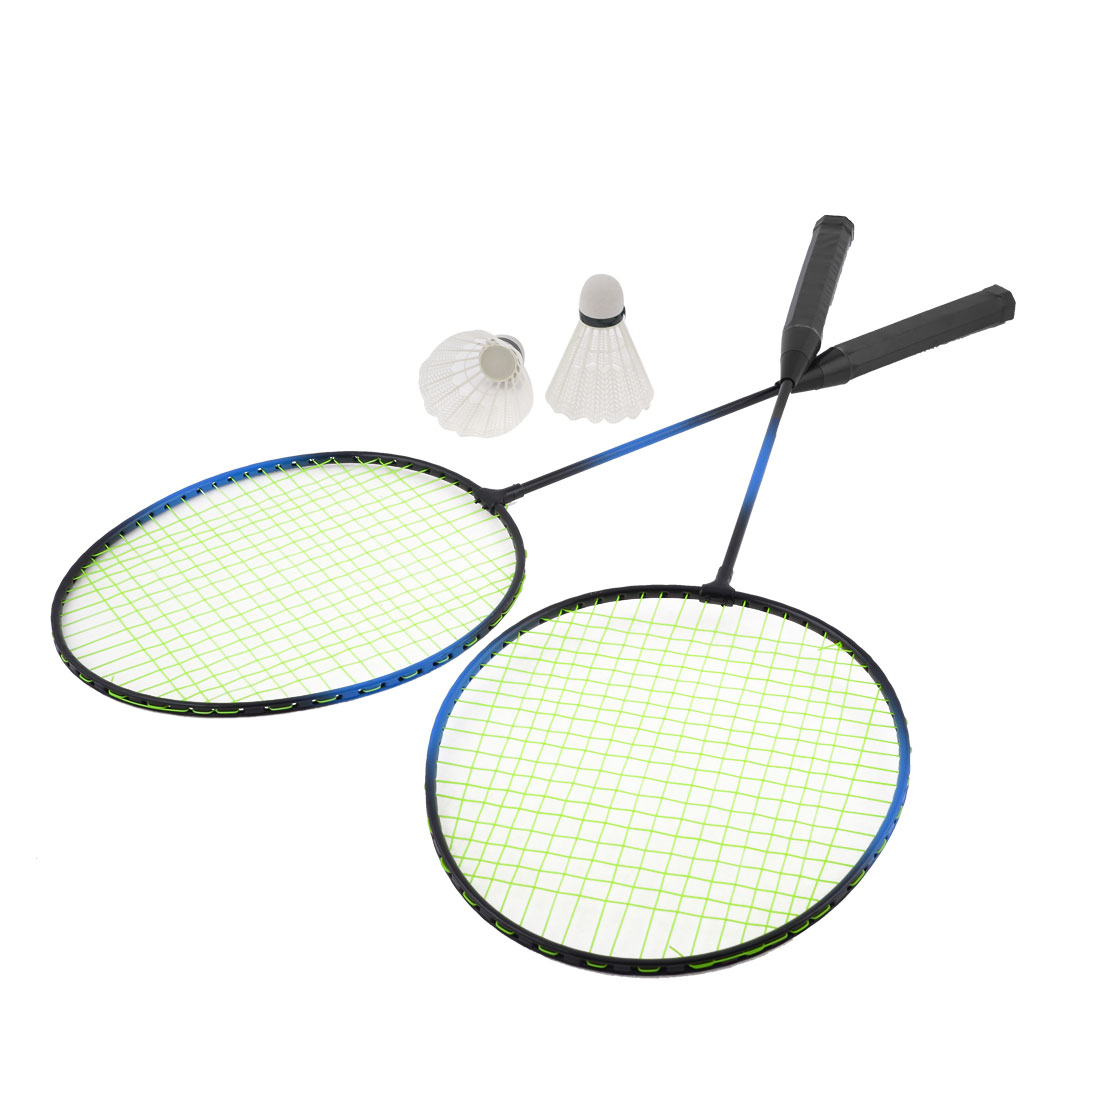 2 Pcs Green String Black Red Handle Sports Badminton Rackets Racquets w 2 Shuttlecocks